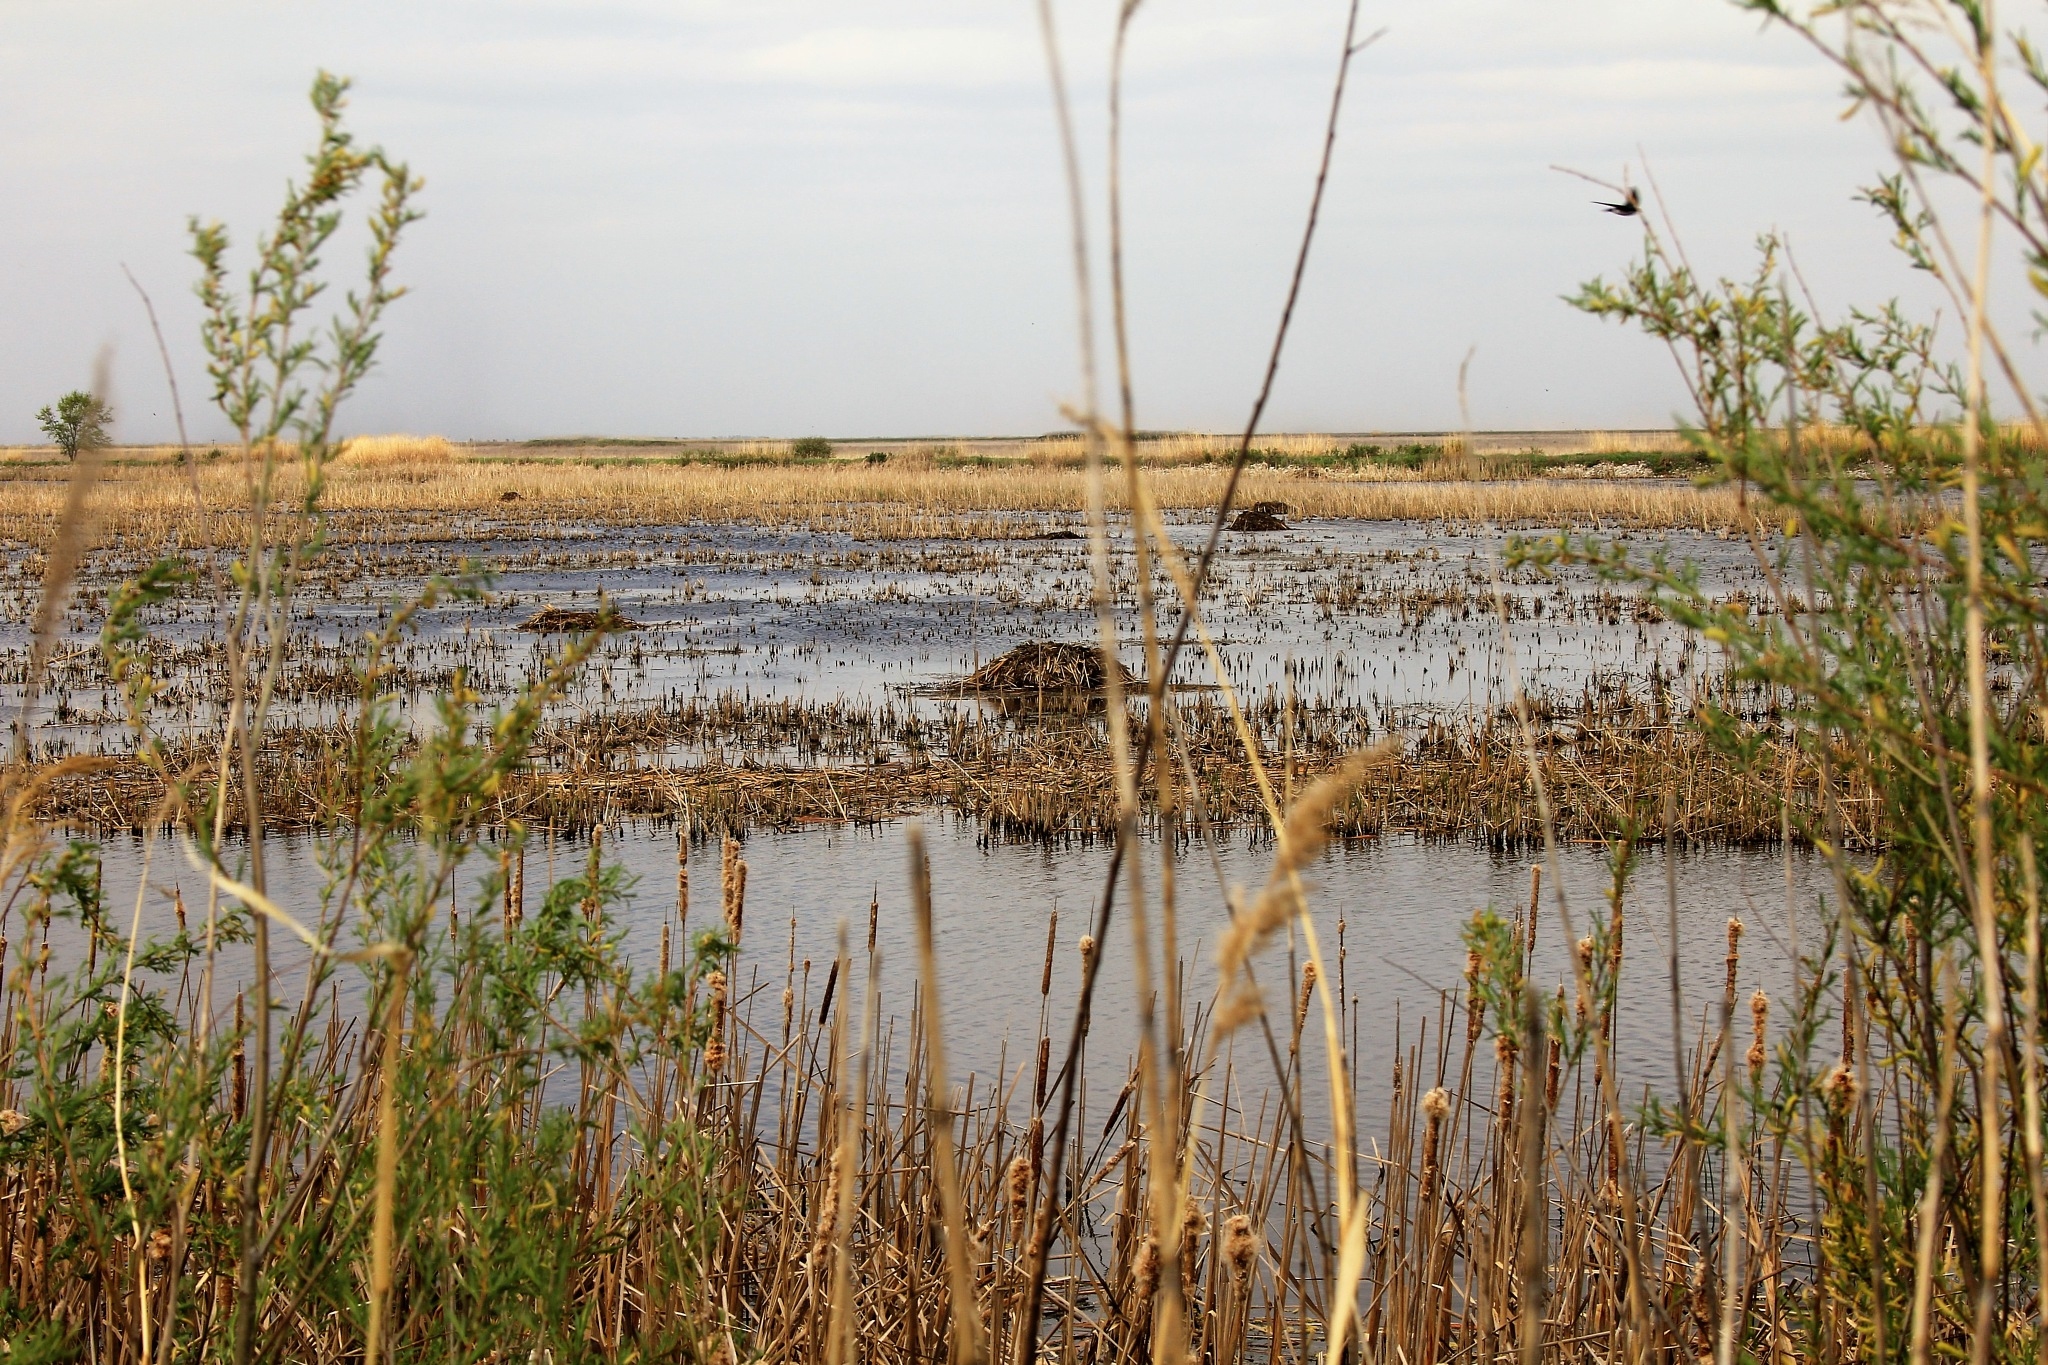 Wetland and Beaver Lodge  by David Imrie